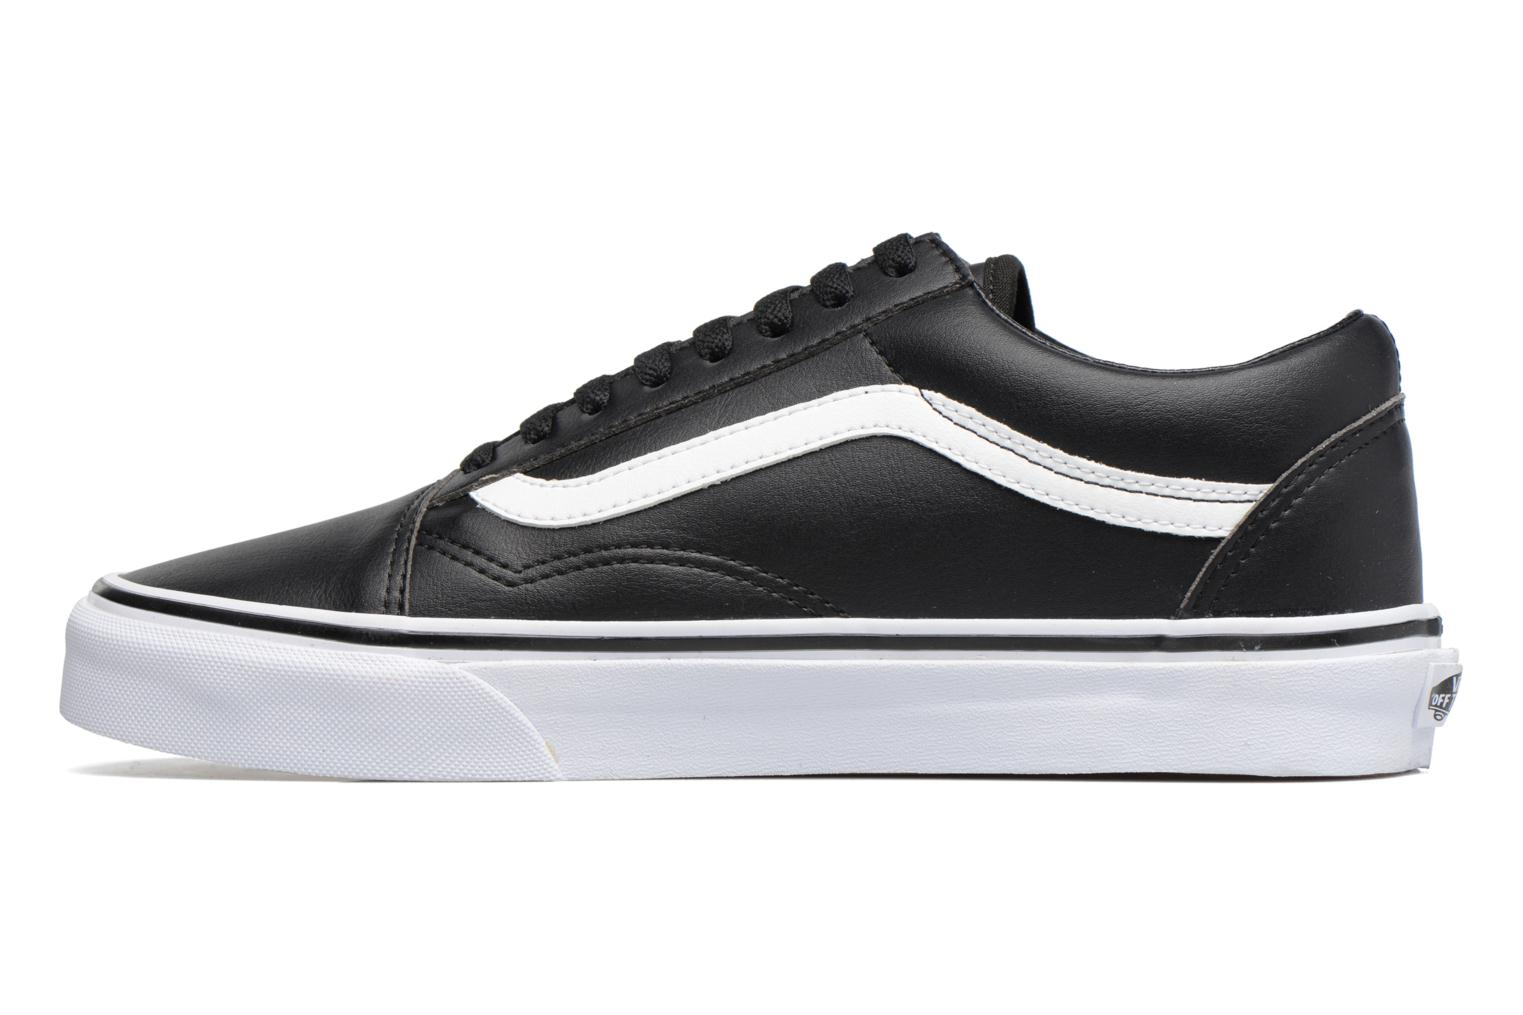 Old Skool Black/true white